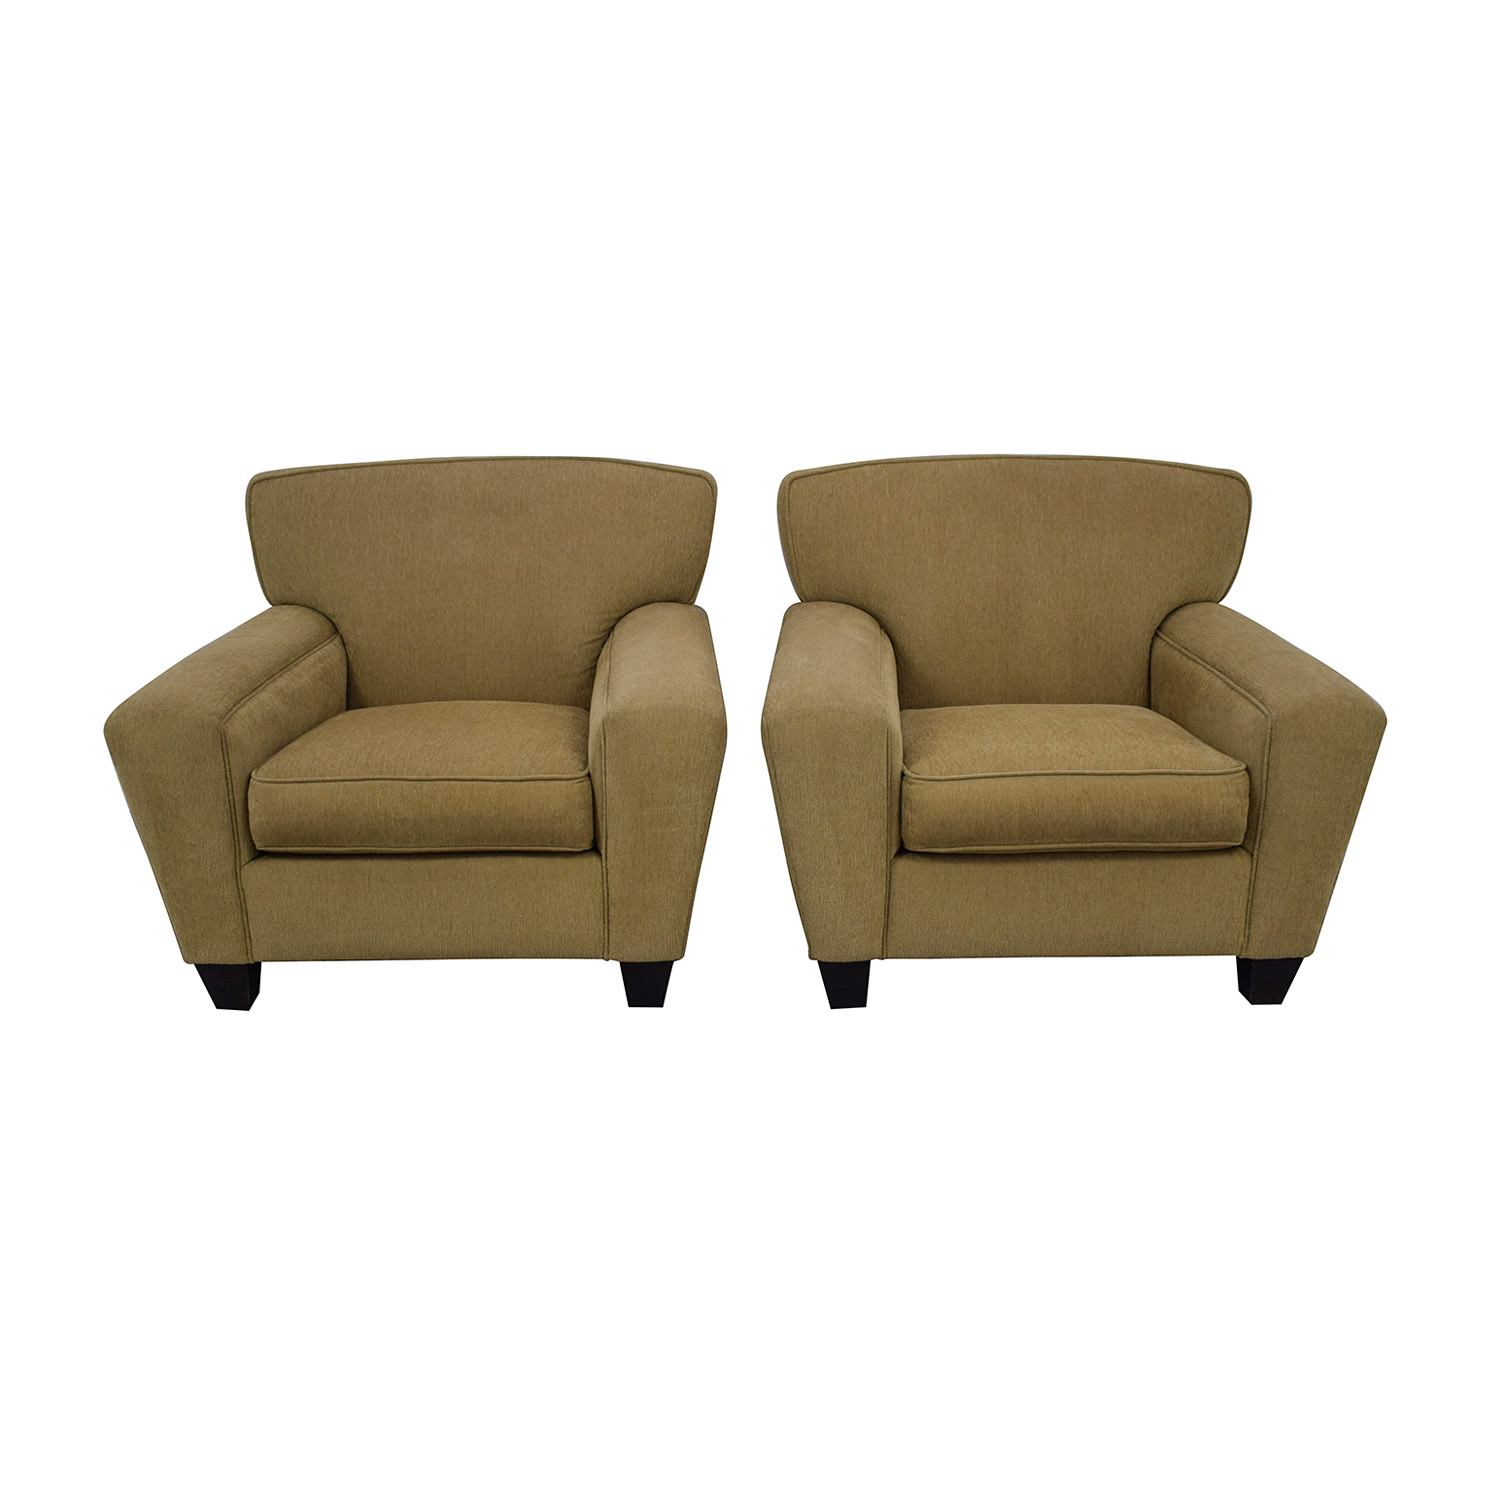 Storehouse Storehouse Armchairs nj